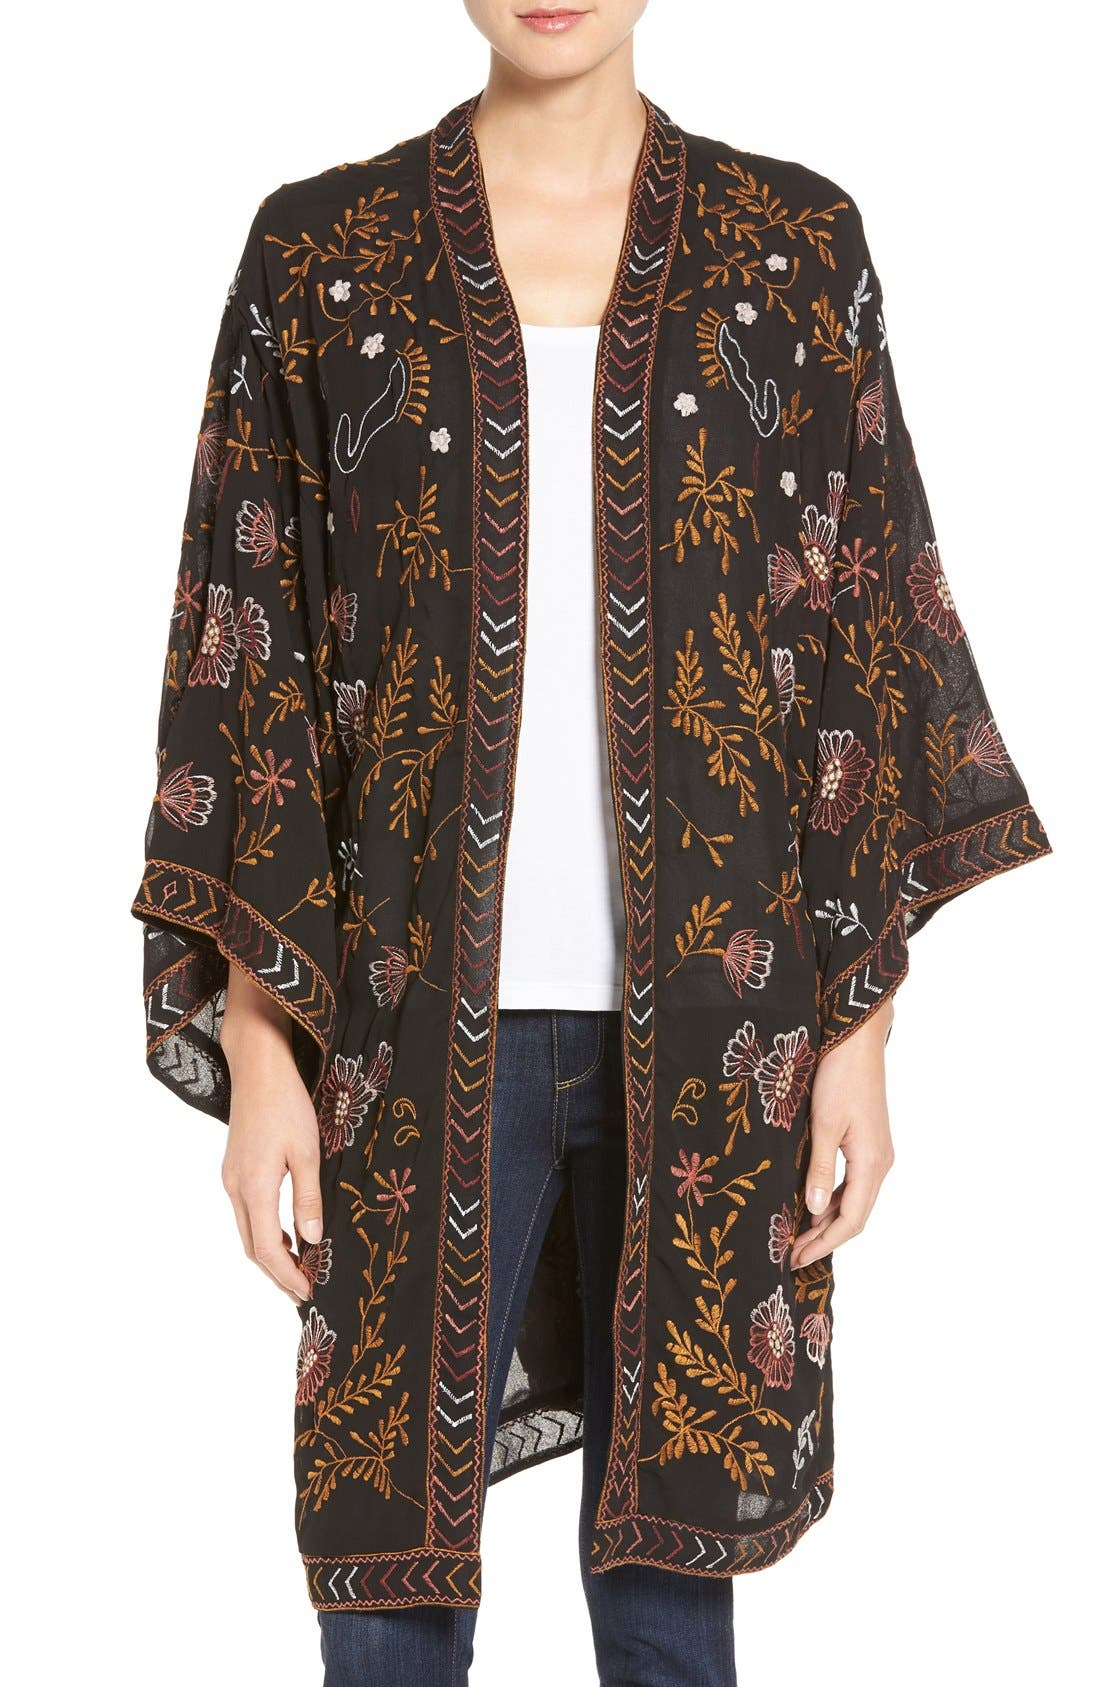 WILLOW & CLAY,                             Embroidered Kimono,                             Main thumbnail 1, color,                             001